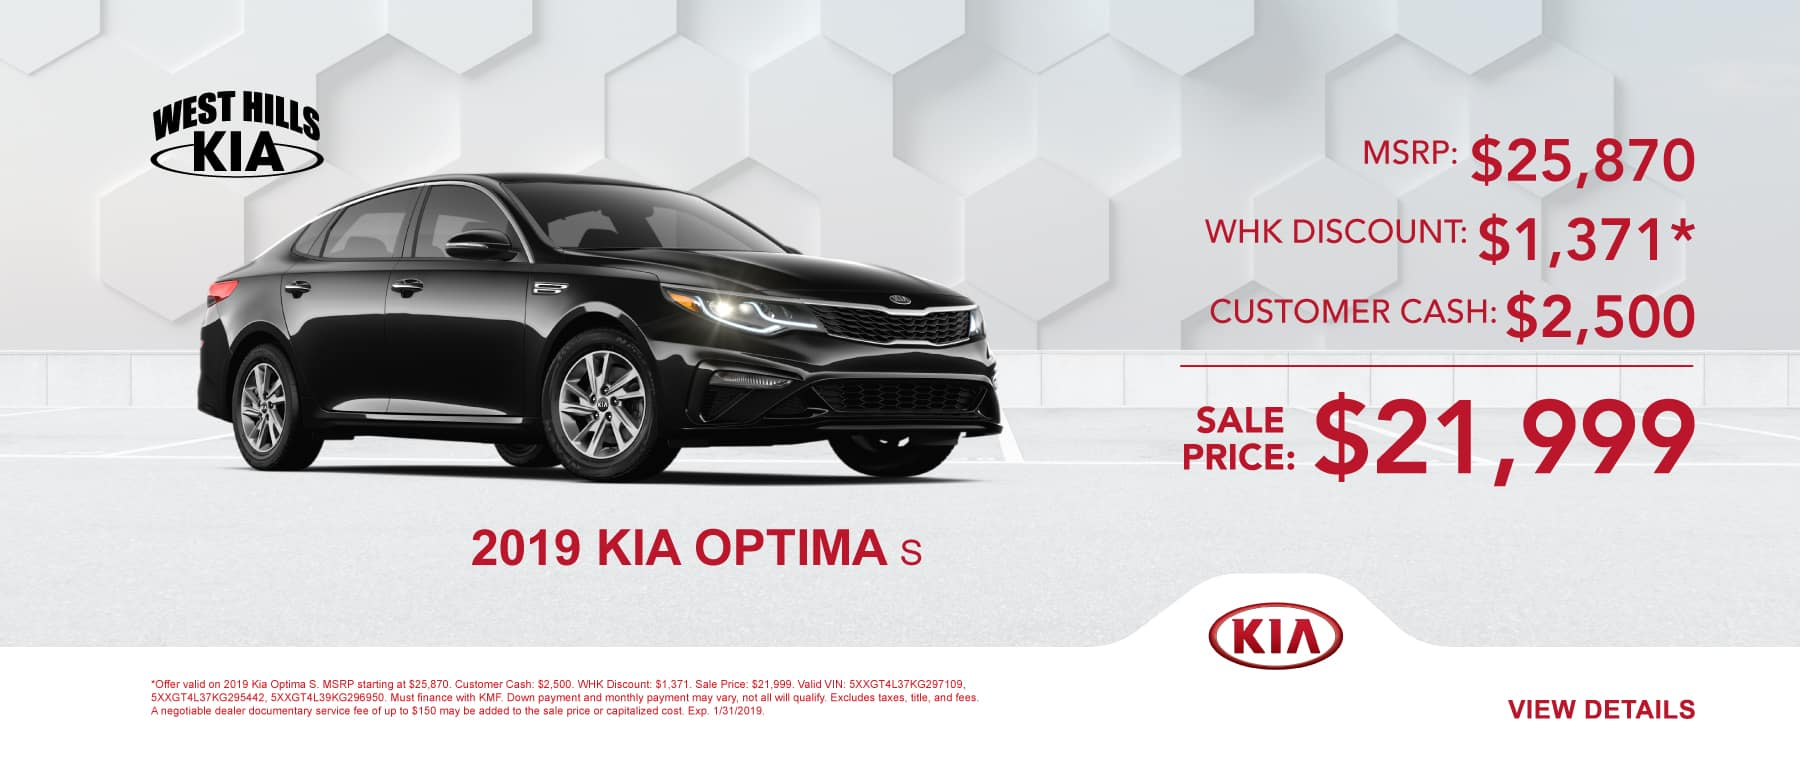 2019 Kia Optima S MSRP: $25,870 Customer Cash: $2,500 WHK Discount: $1,371* Sale Price: $21,999   *Offer valid on 2019 Kia Optima S. MSRP starting at $25,870. Customer Cash: $2,500. WHK Discount: $1,371. Sale Price: $21,999. Valid VIN: 5XXGT4L37KG297109, 5XXGT4L37KG295442, 5XXGT4L39KG296950. Must finance with KMF. Down payment and monthly payment may vary, not all will qualify. Excludes taxes, title, and fees. A negotiable dealer documentary service fee of up to $150 may be added to the sale price or capitalized cost. Exp. 1/31/2019.